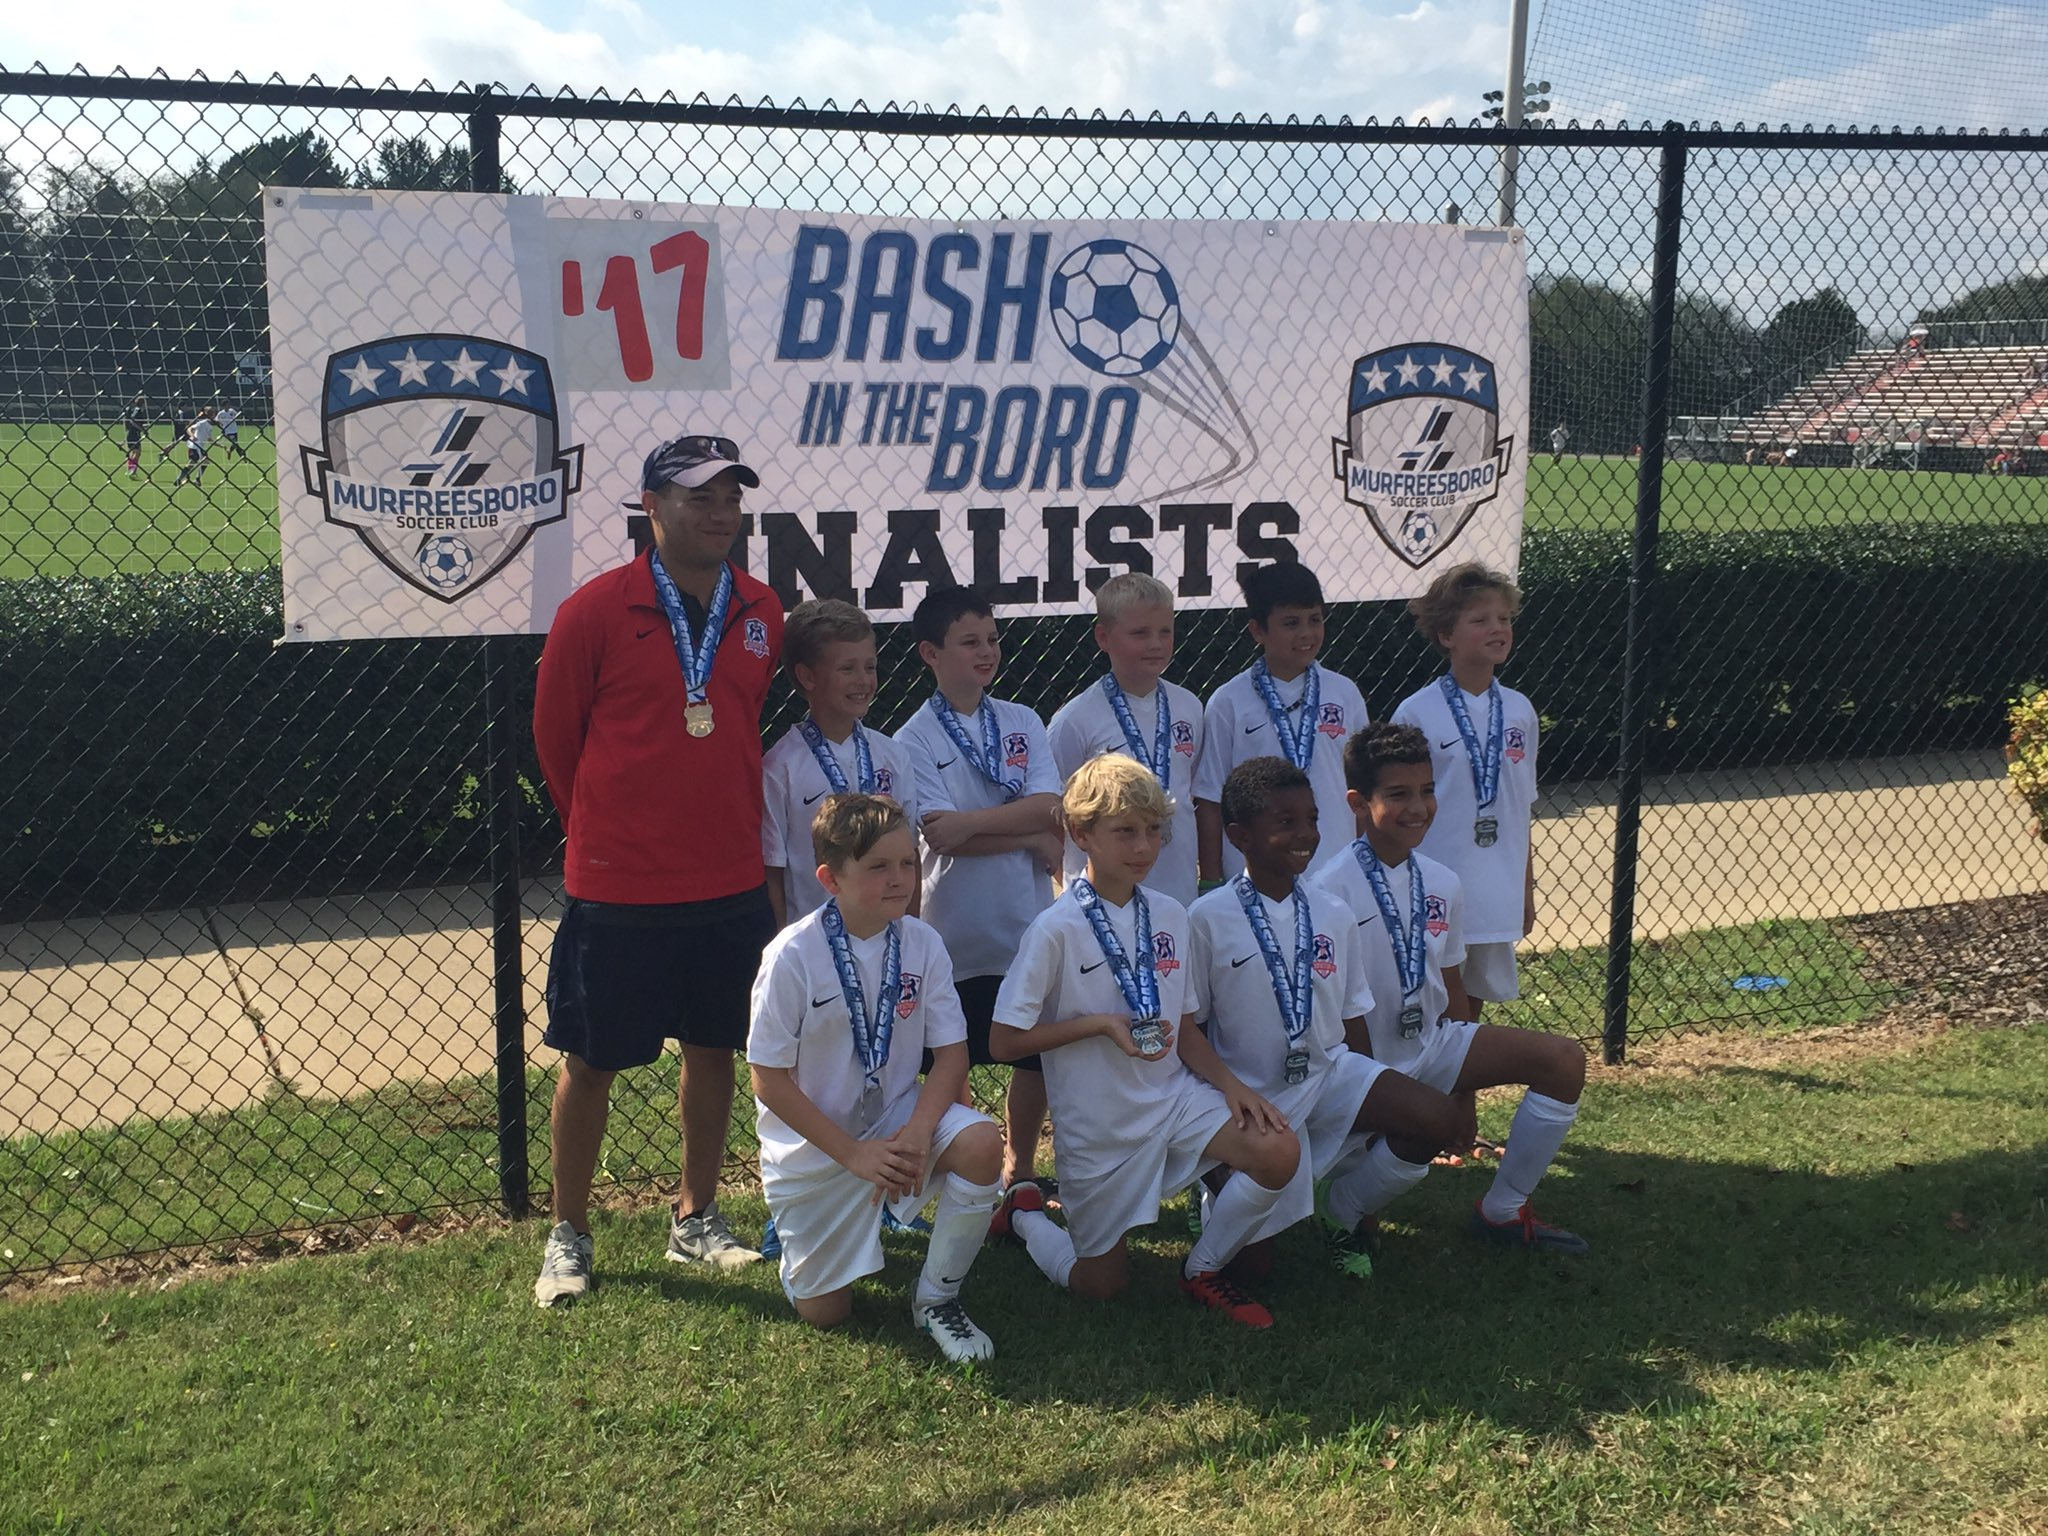 2008 Boys Blue are Finalists at Bash in the Boro!